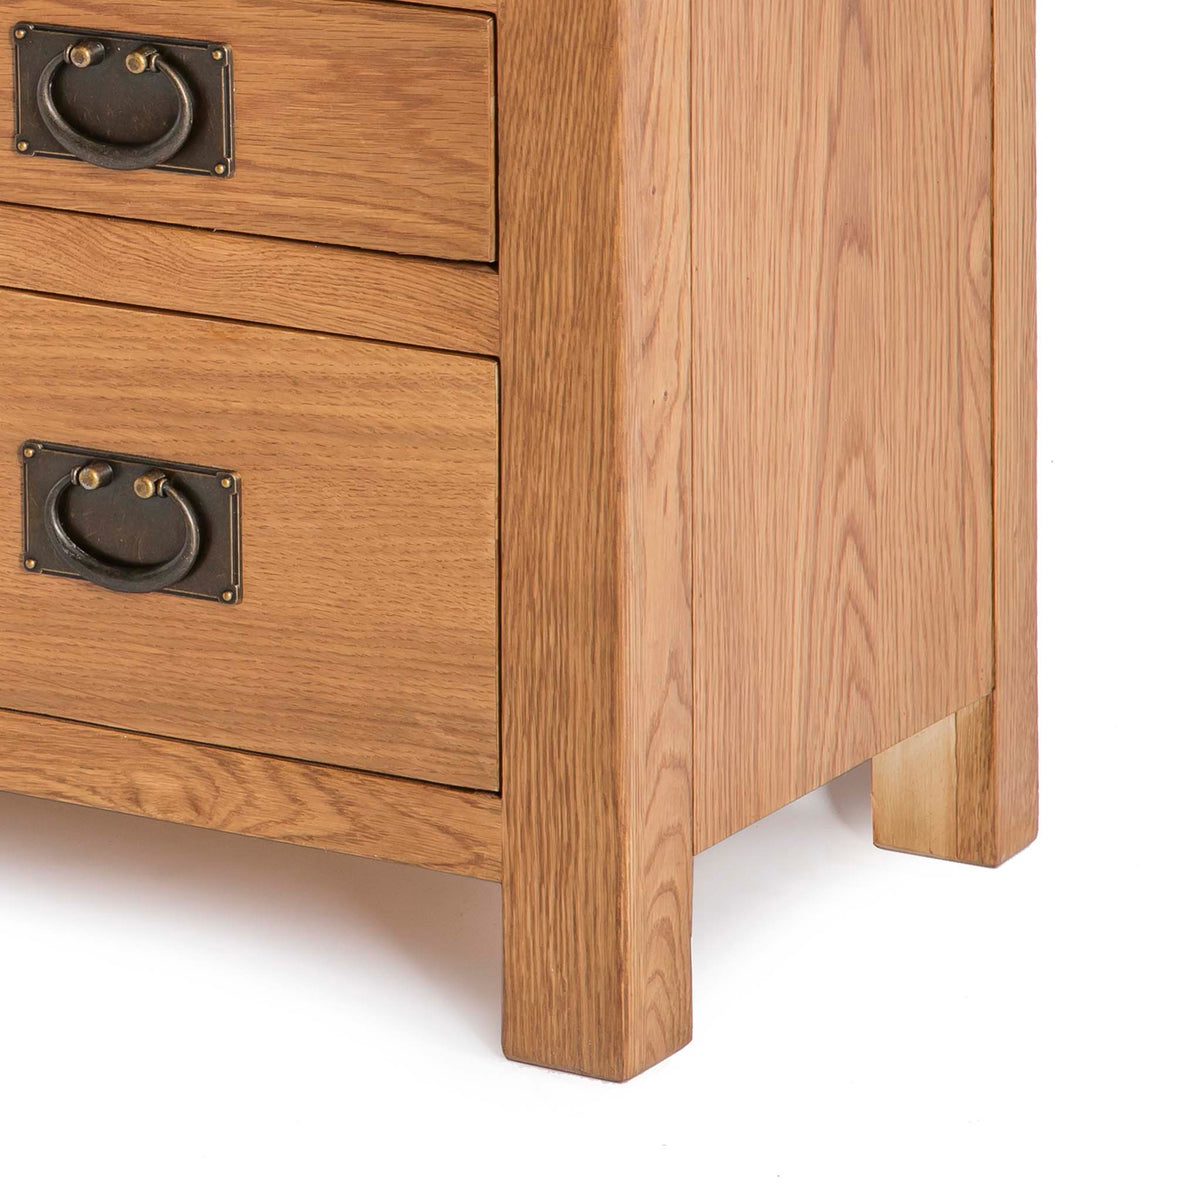 Surrey Oak 85cm TV Stand with Drawers - Close Up of Top of TV Stand